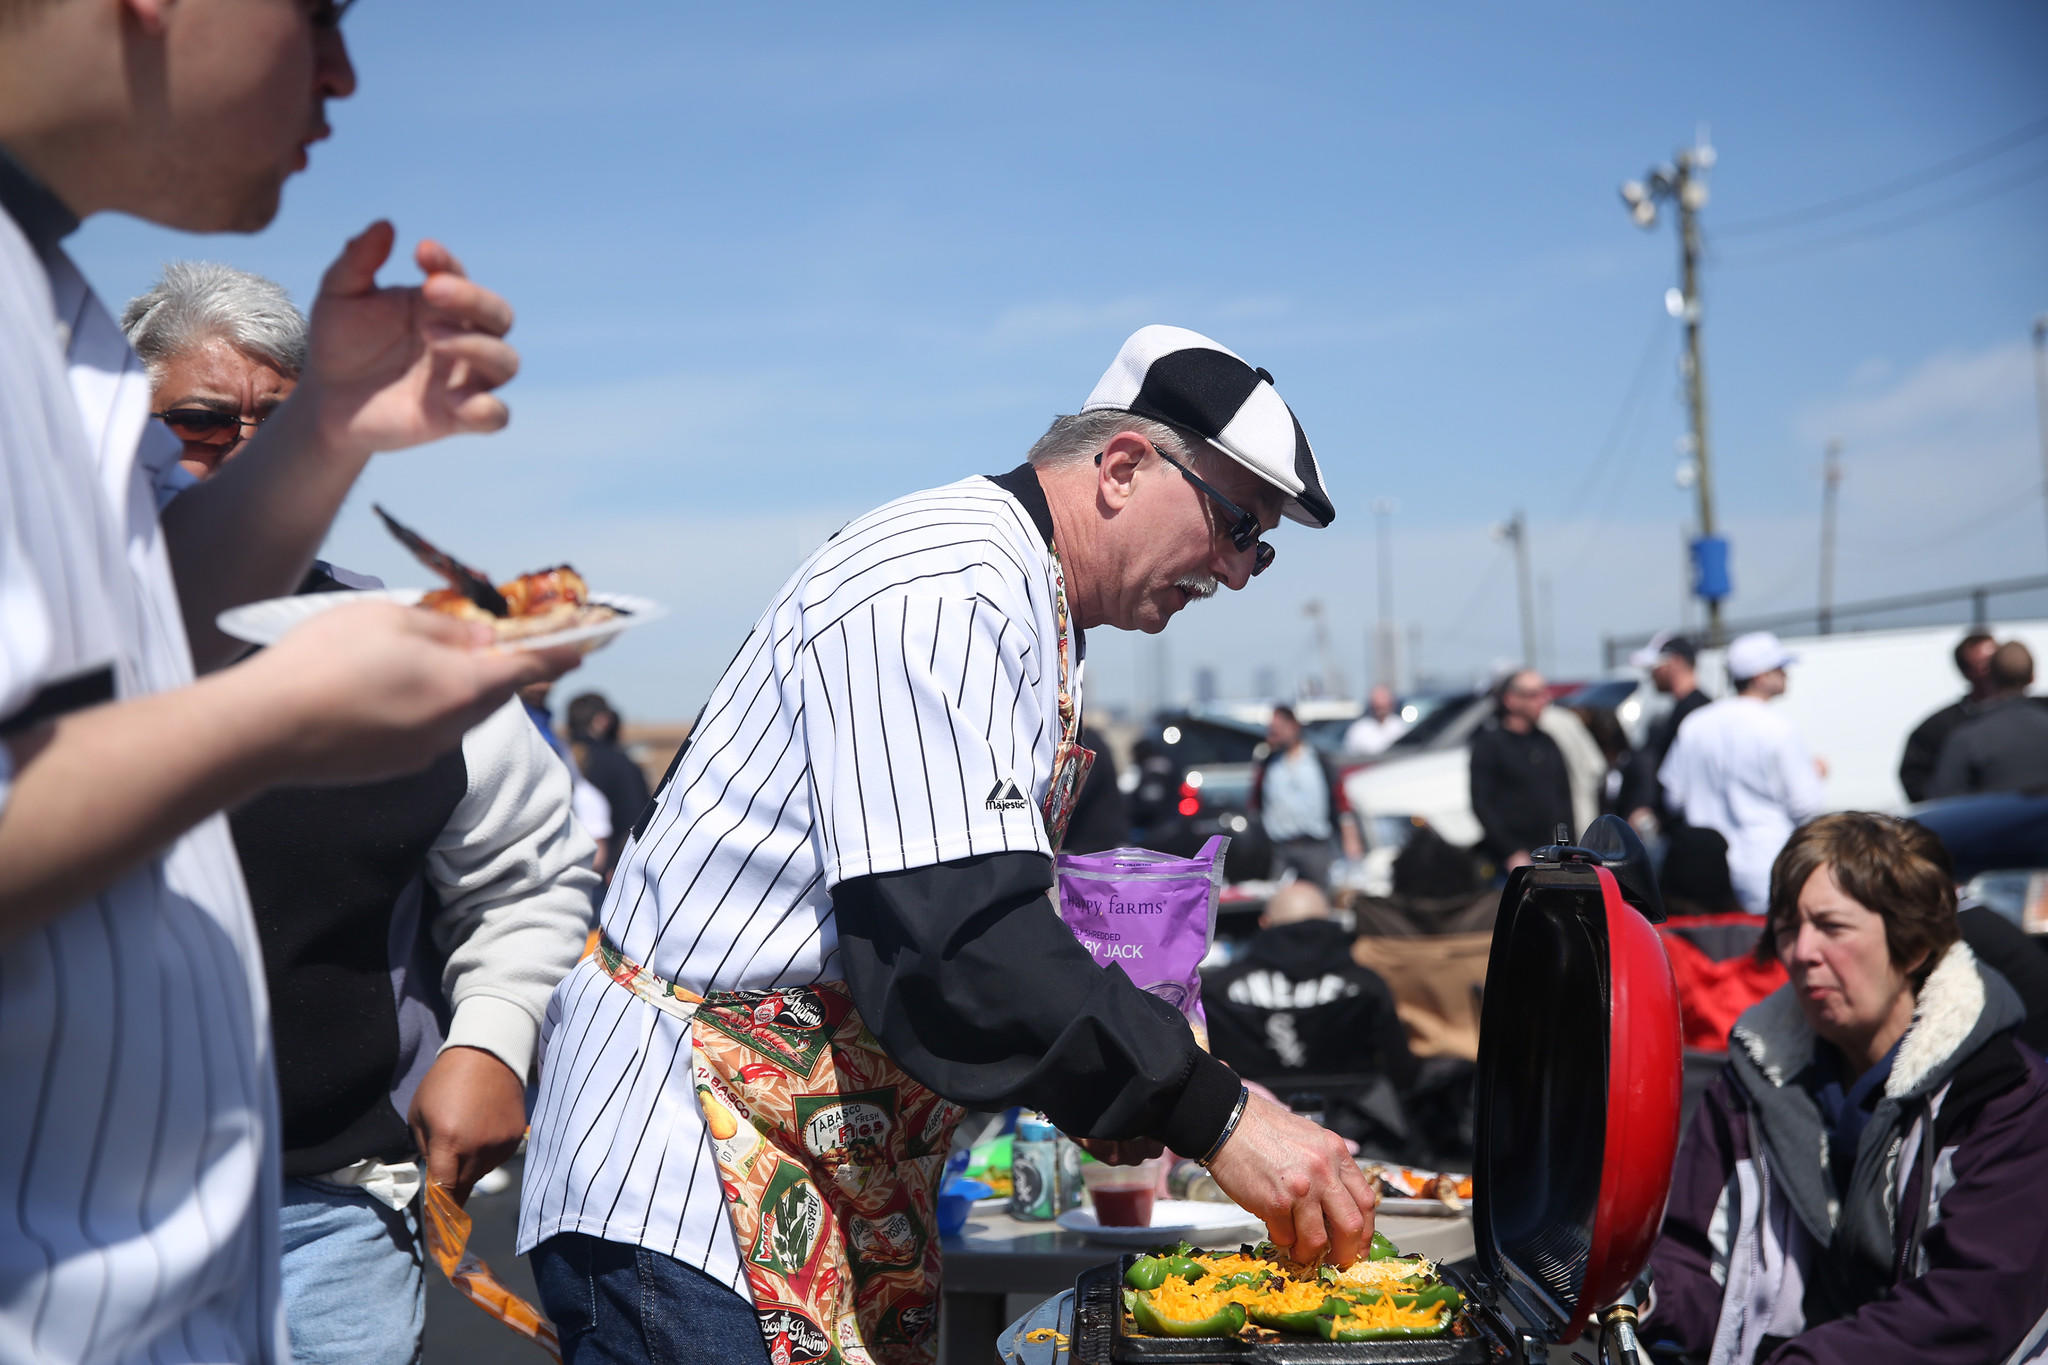 Bob Orsula prepares his special stuffed jalapeno peppers as Sox fans prepare for the home opener at US Cellular Field Monday.